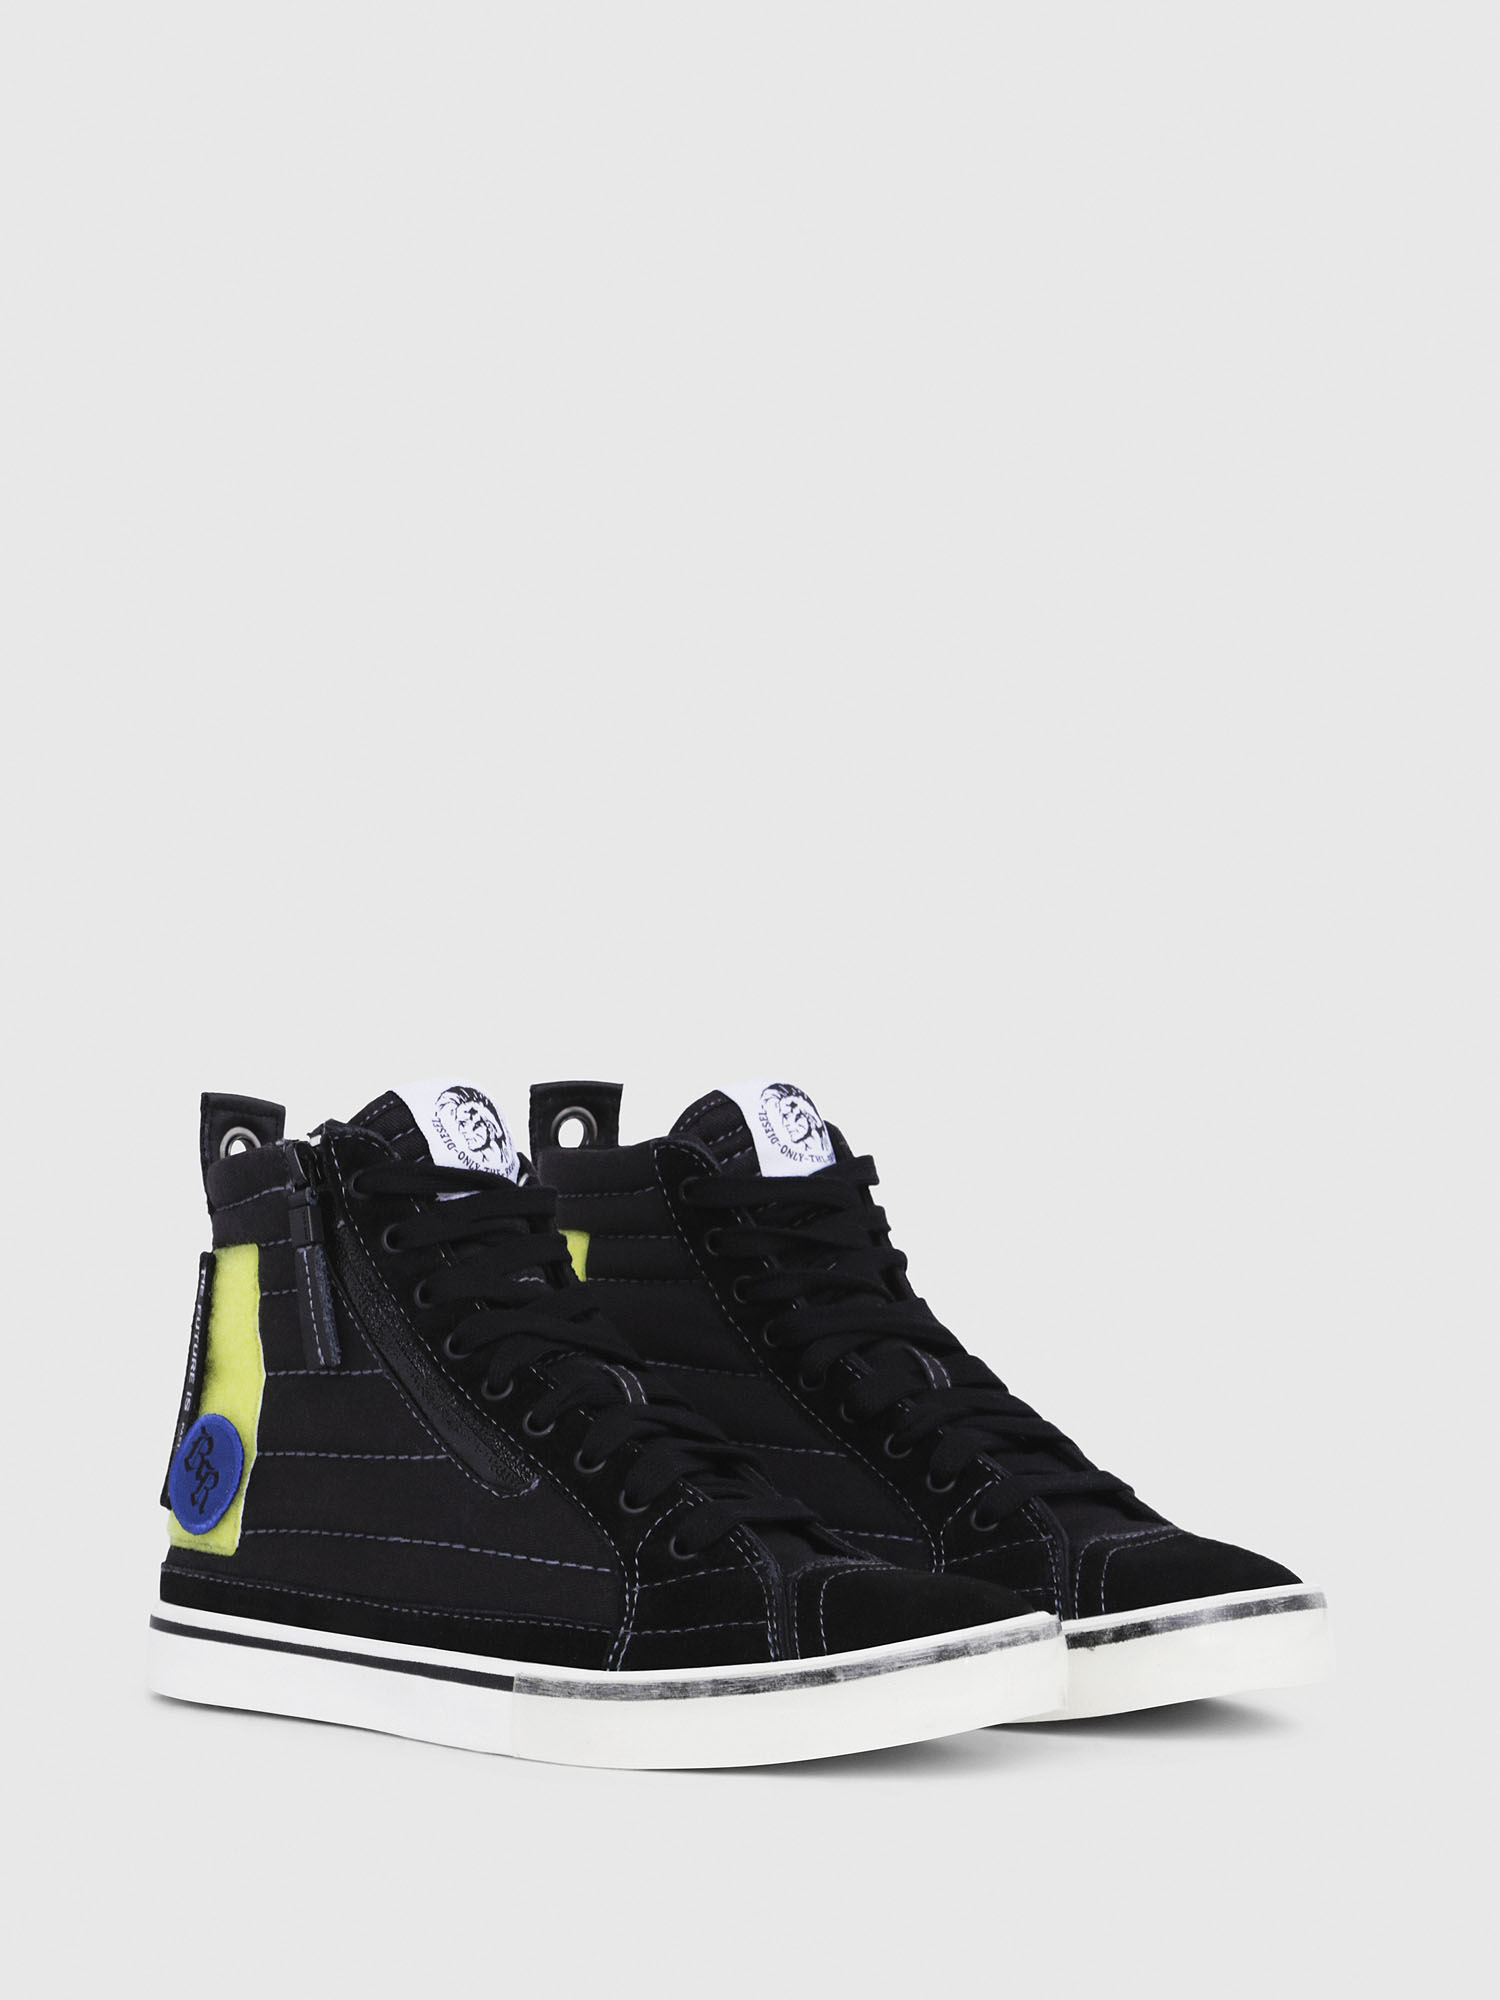 Diesel - D-VELOWS MID PATCH W,  - Sneakers - Image 2